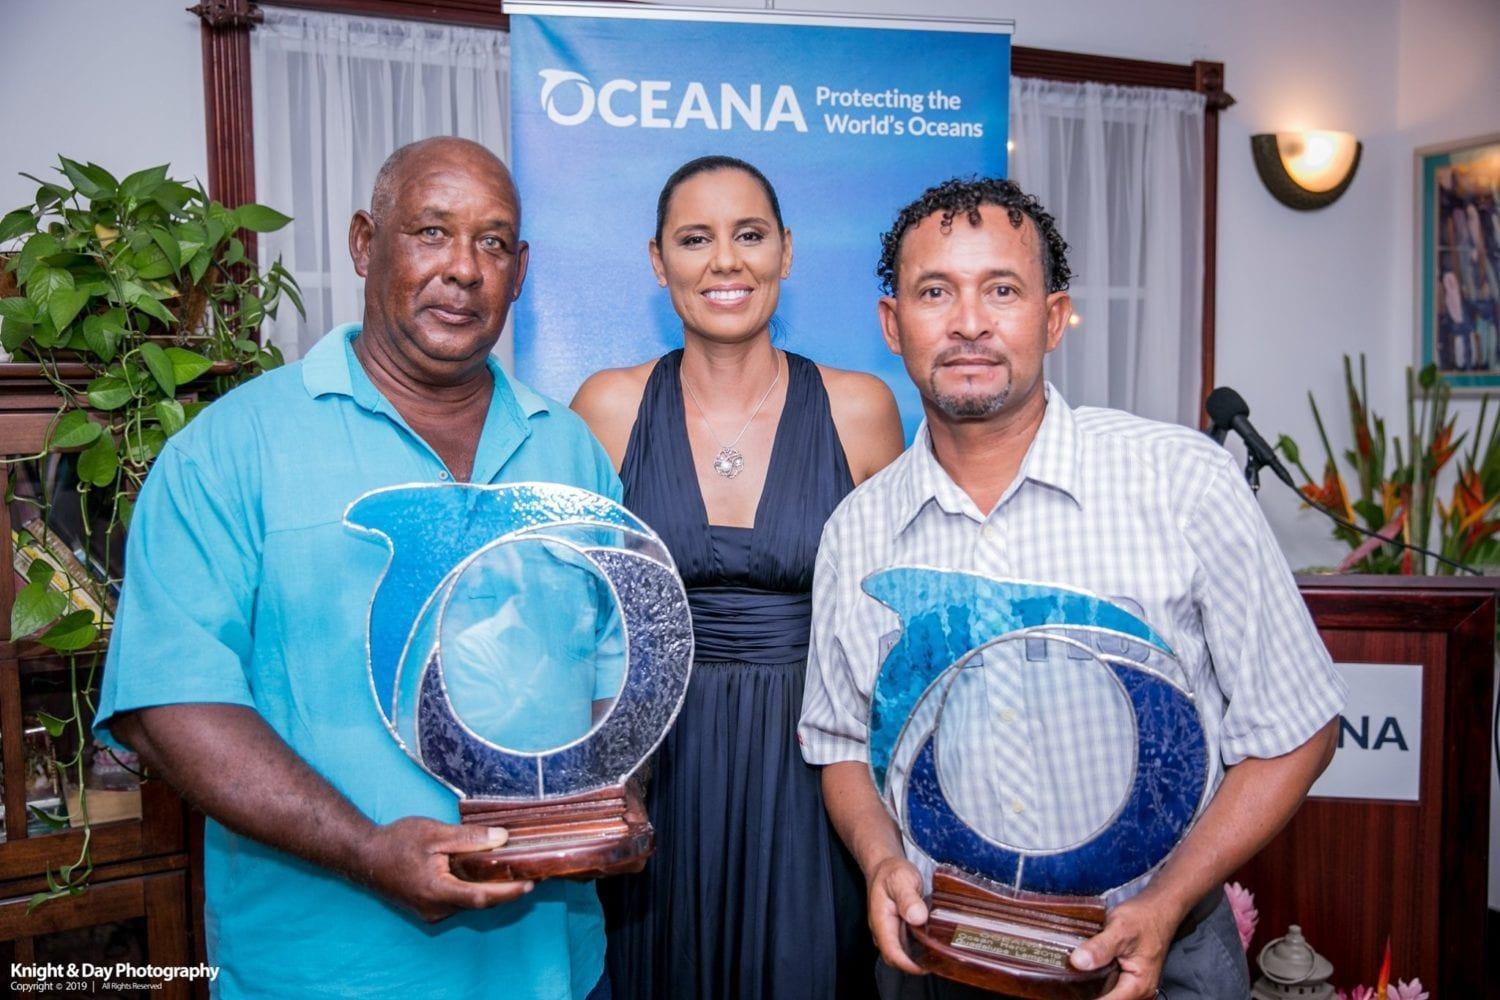 The 2019 Oceana Belize Ocean Hero Awards Vice President Janelle Chanona